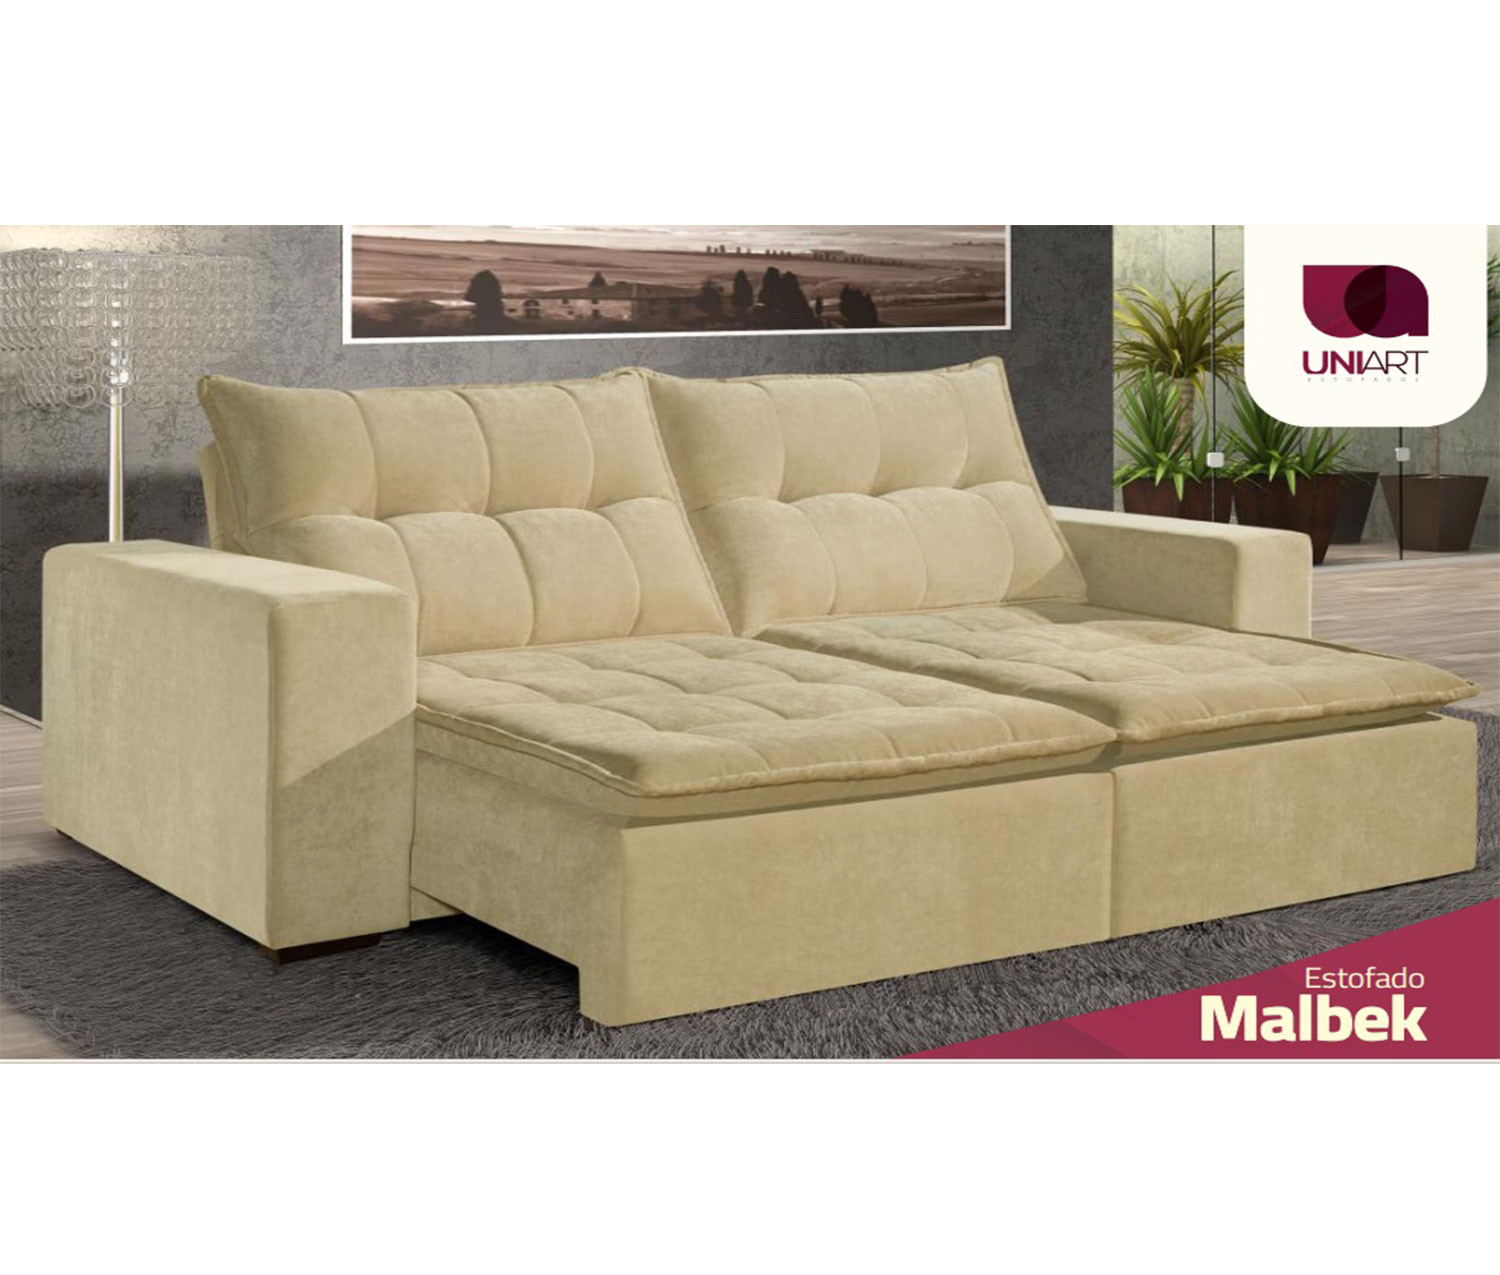 Sofa Retratil Uba Mg Sofa Retratil Reclinavel Malbek 2 30mts Até 2 90mts Uniart Estofados